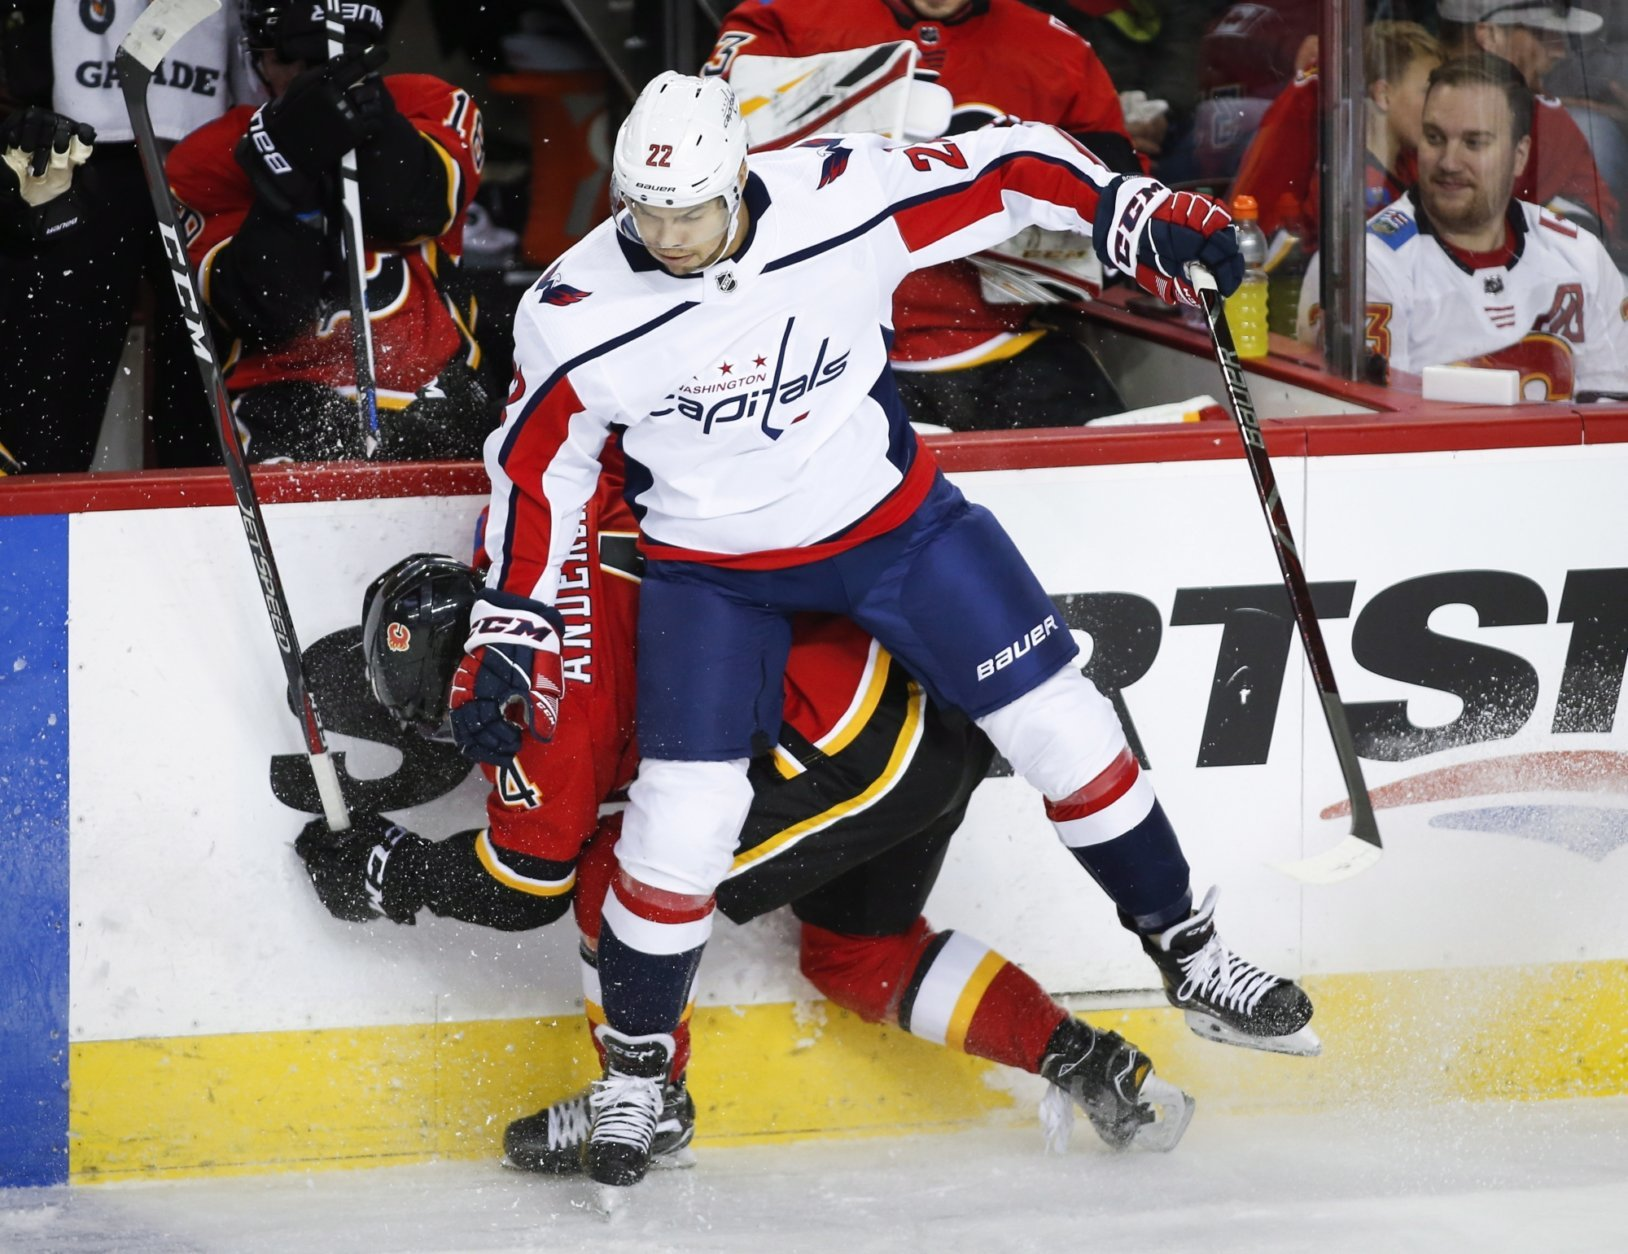 Washington Capitals' Madison Bowey, right, checks Calgary Flames' Rasmus Andersson, of Sweden, during second period NHL hockey action in Calgary, Alberta, Saturday, Oct. 27, 2018. (Jeff McIntosh/The Canadian Press via AP)